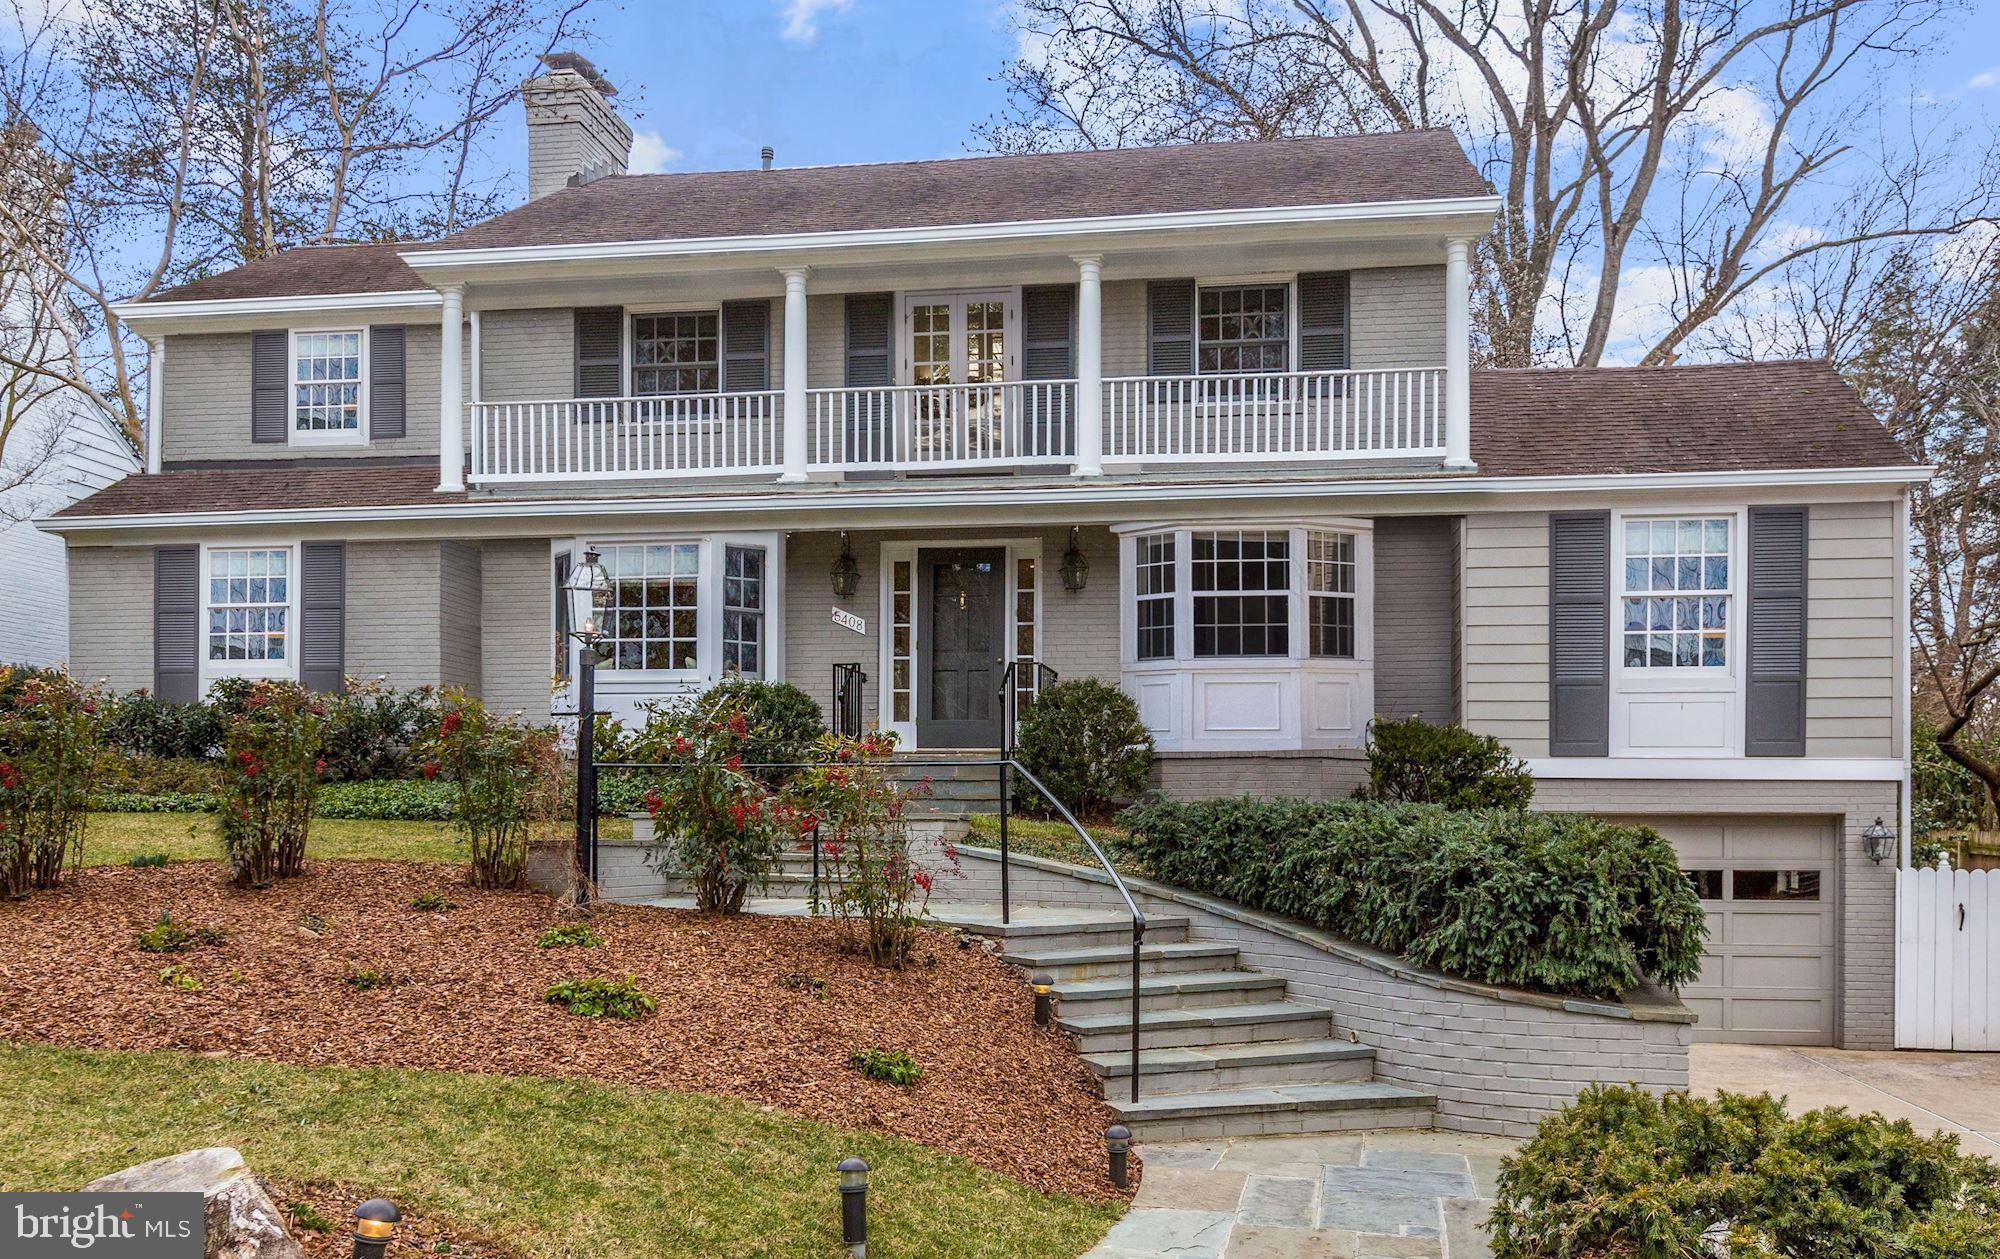 5408 BLACKISTONE ROAD, BETHESDA, MD 20816